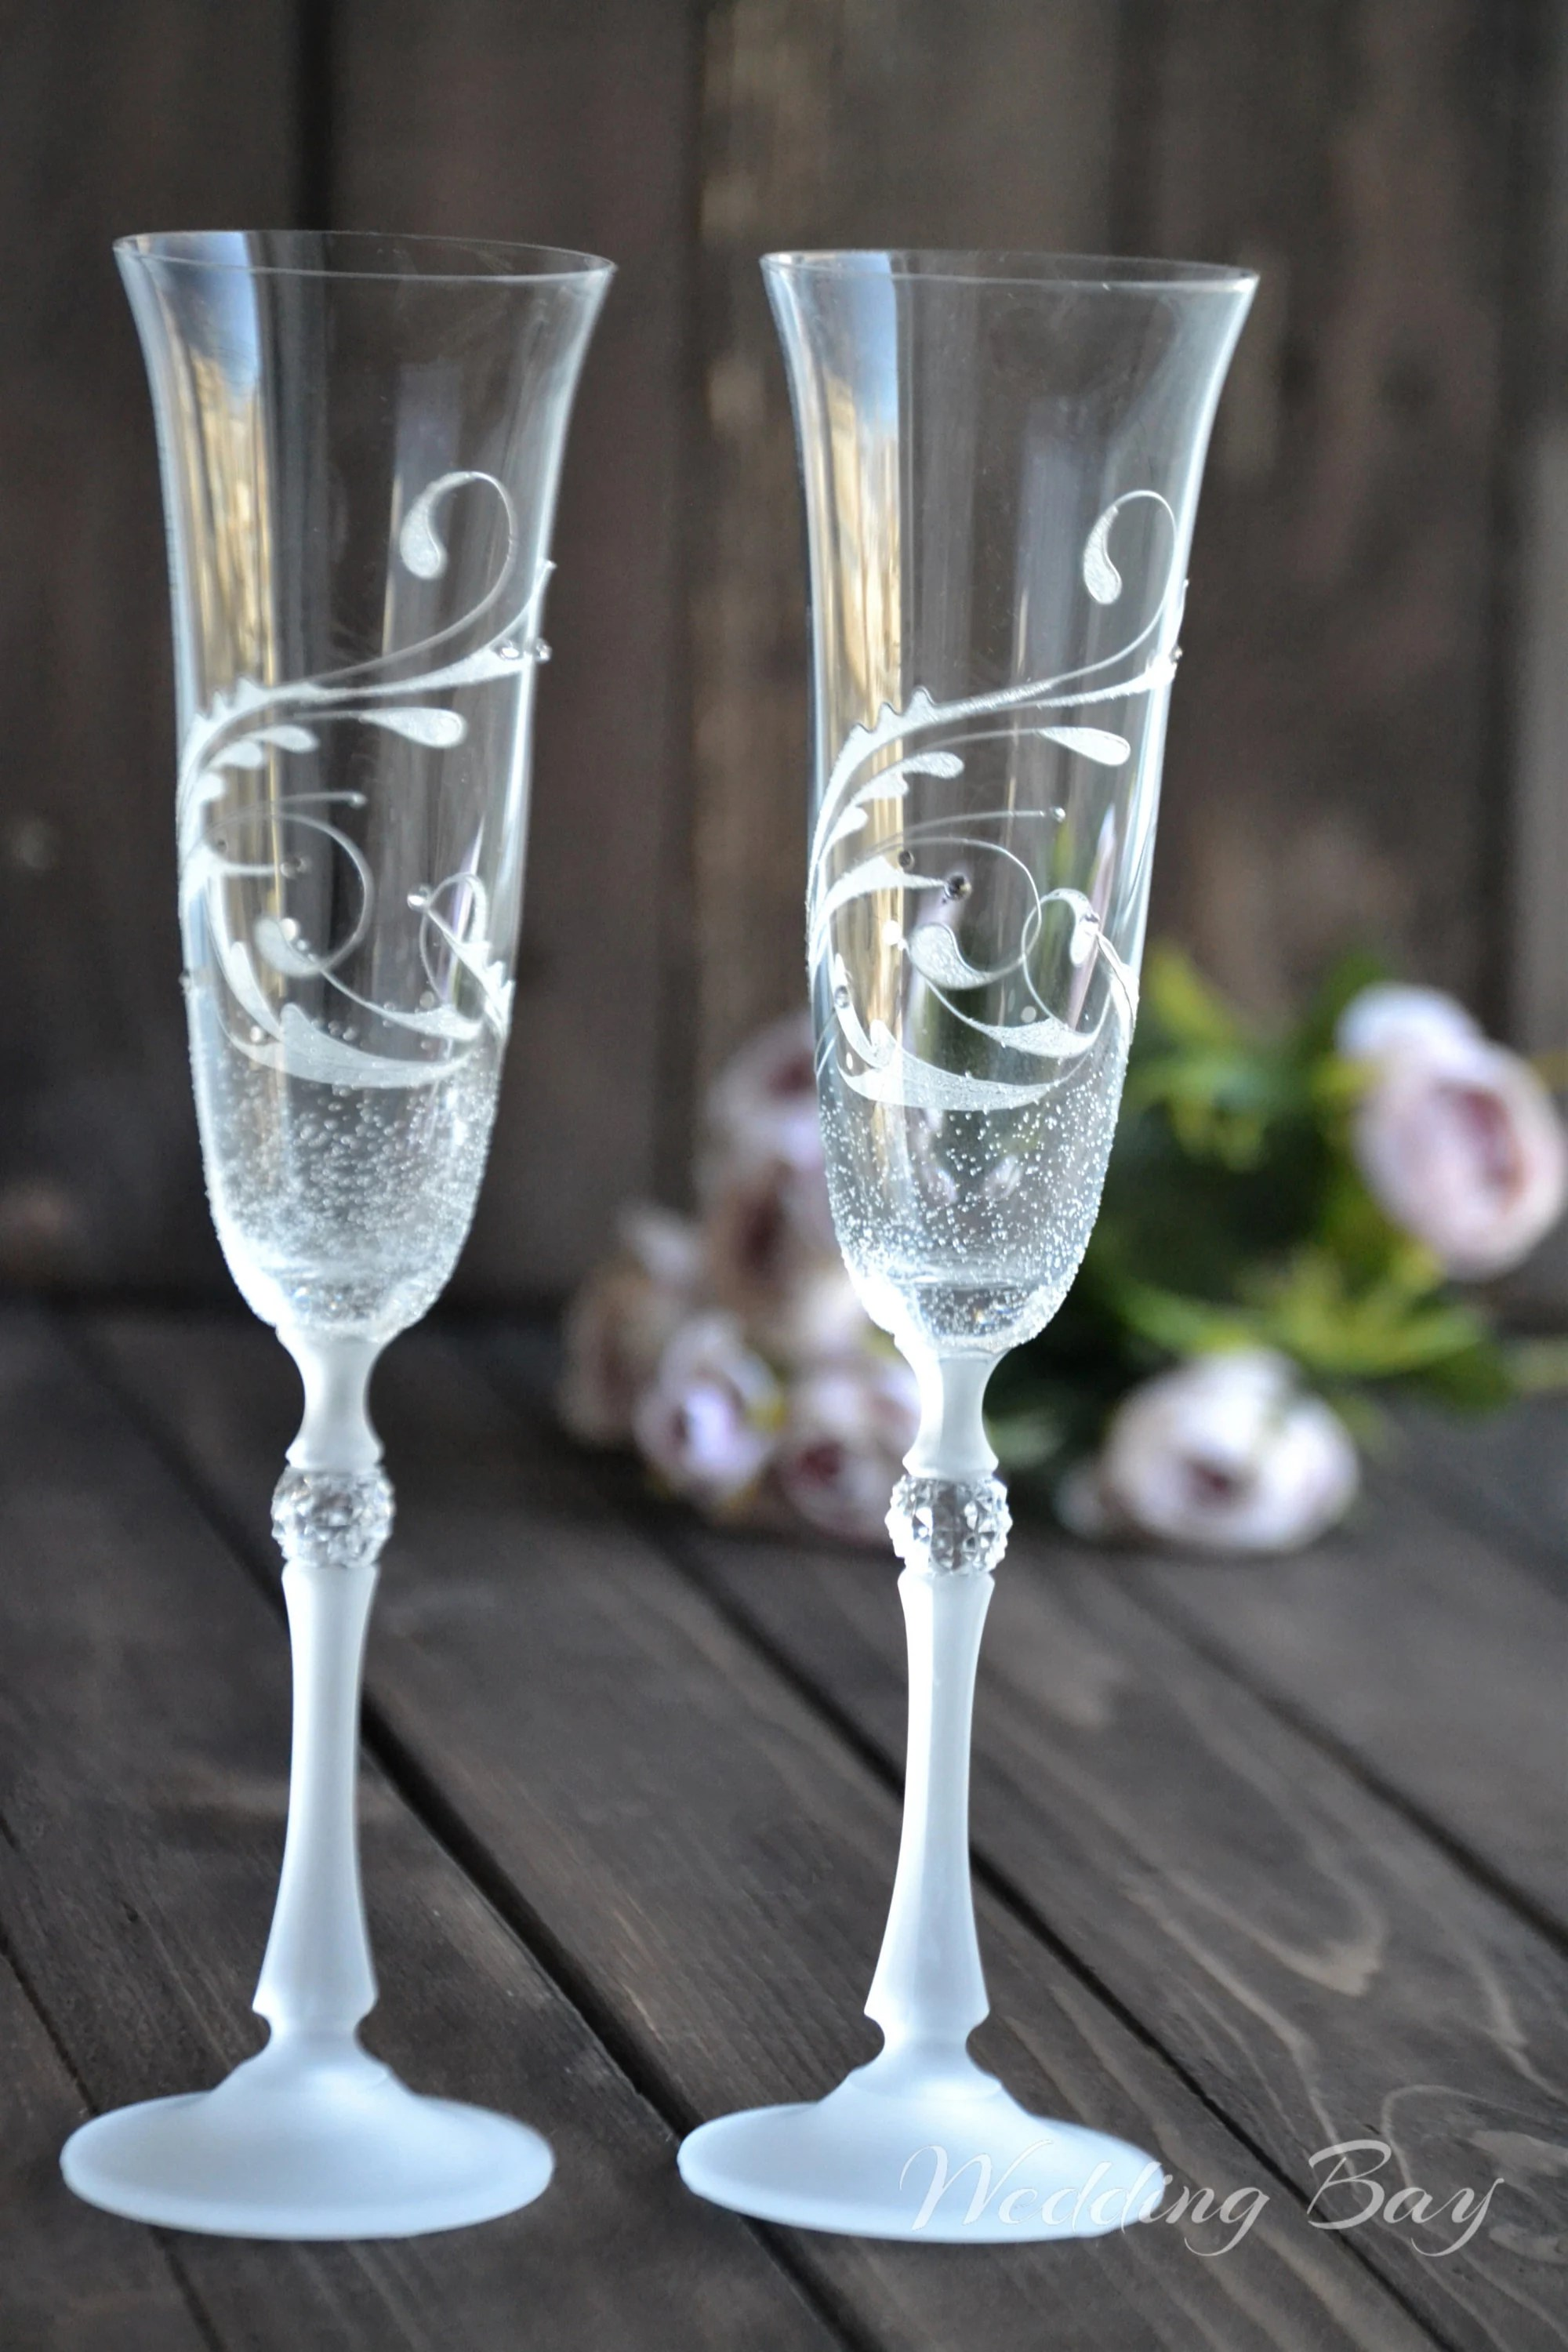 Flute A Champagne Original Champagne Flutes Handpainted Gift For Couples Wedding Glass Set Wedding Glasses For Bride And Groom Sektgläser Hochzeit Weddingabay